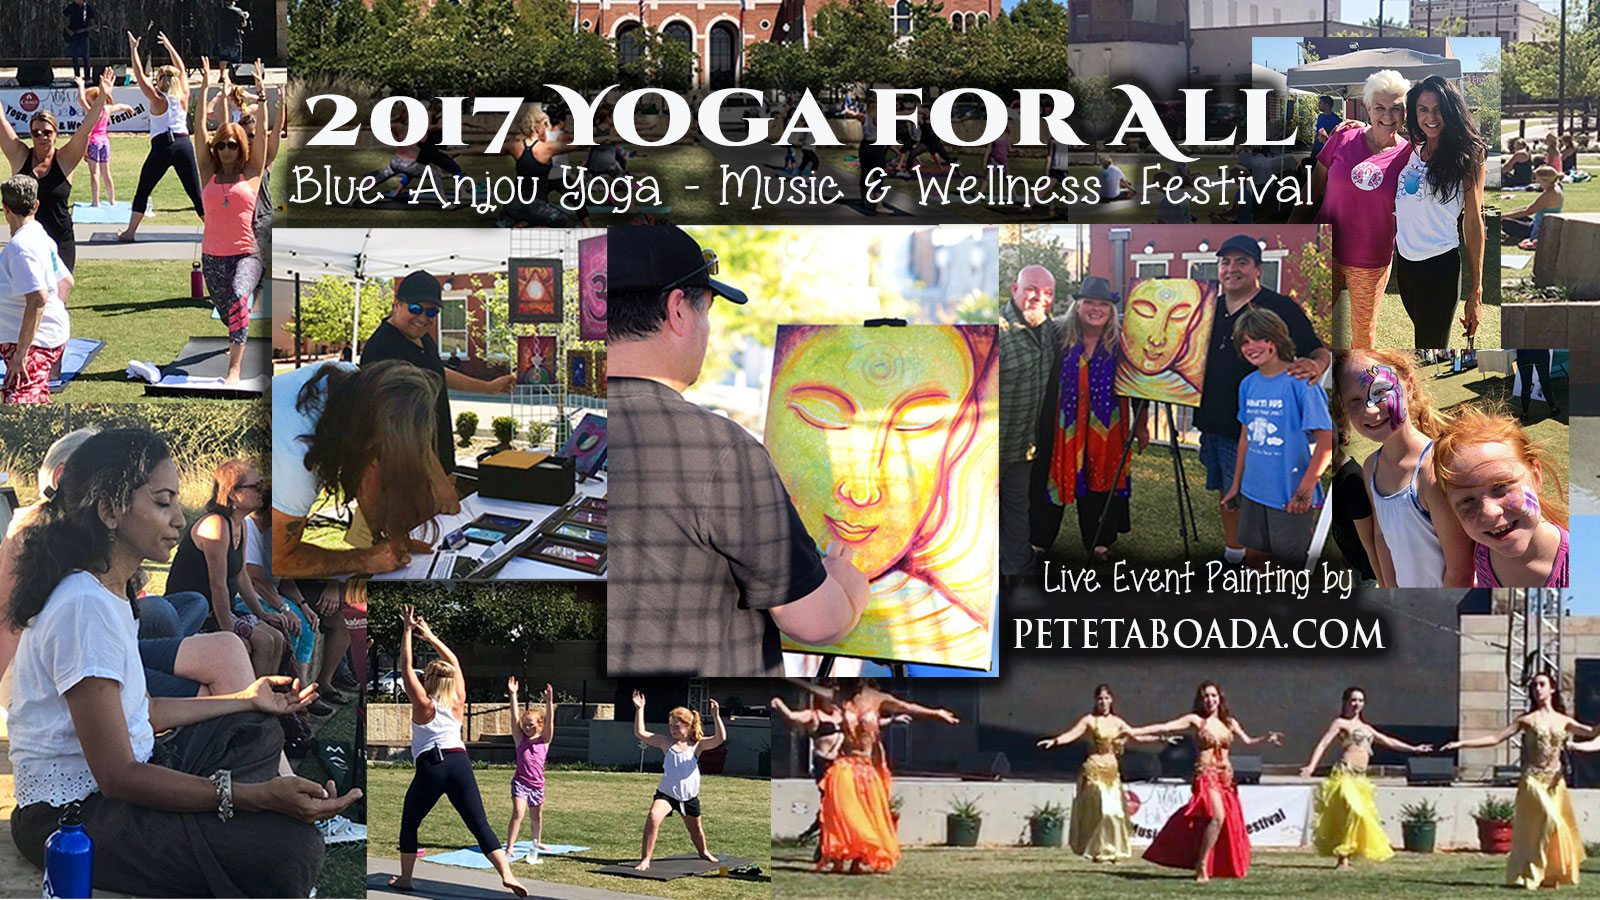 Live Event Painting Buddha At The Yoga for All - Yoga Festival